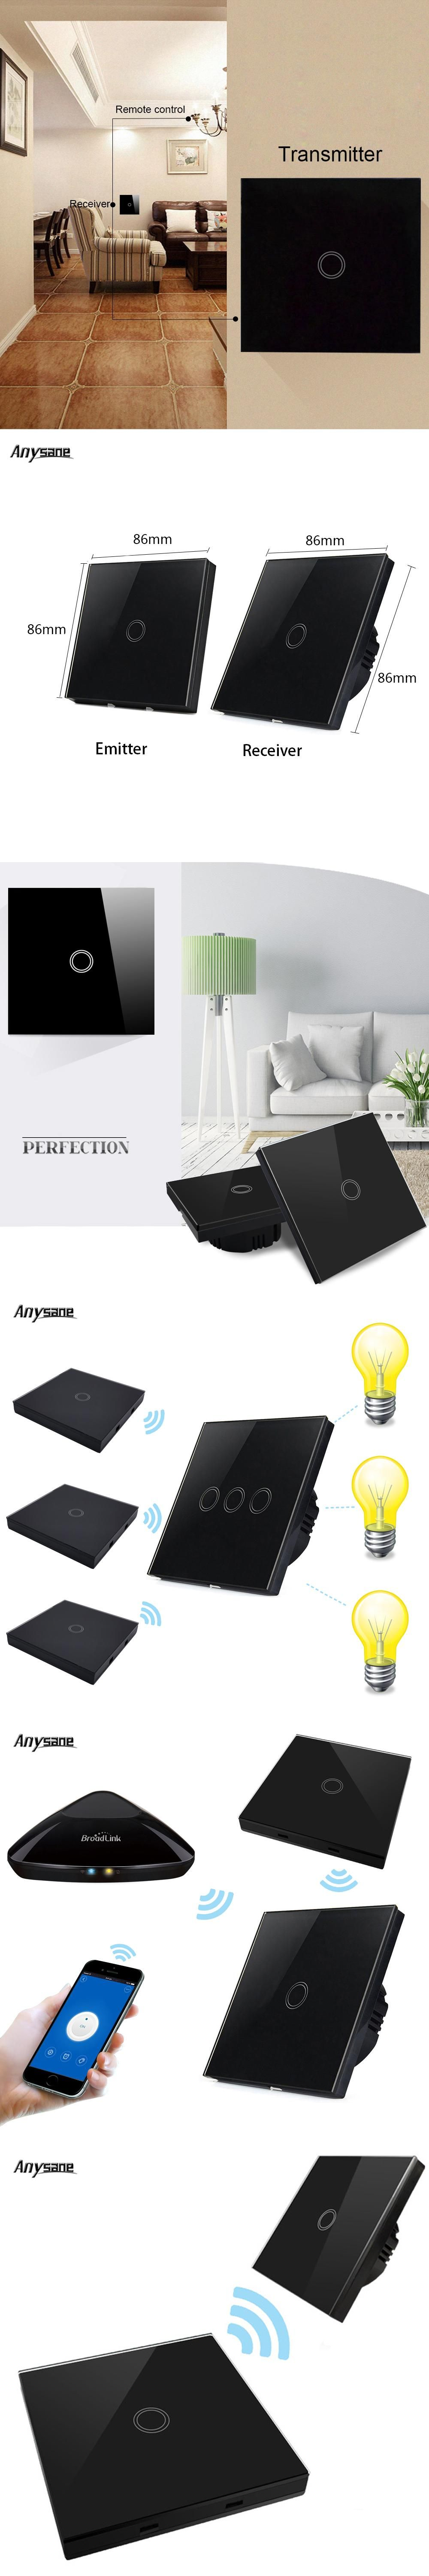 wifi switch rf home itead design automation decoration sonoff smart for best frame of light new